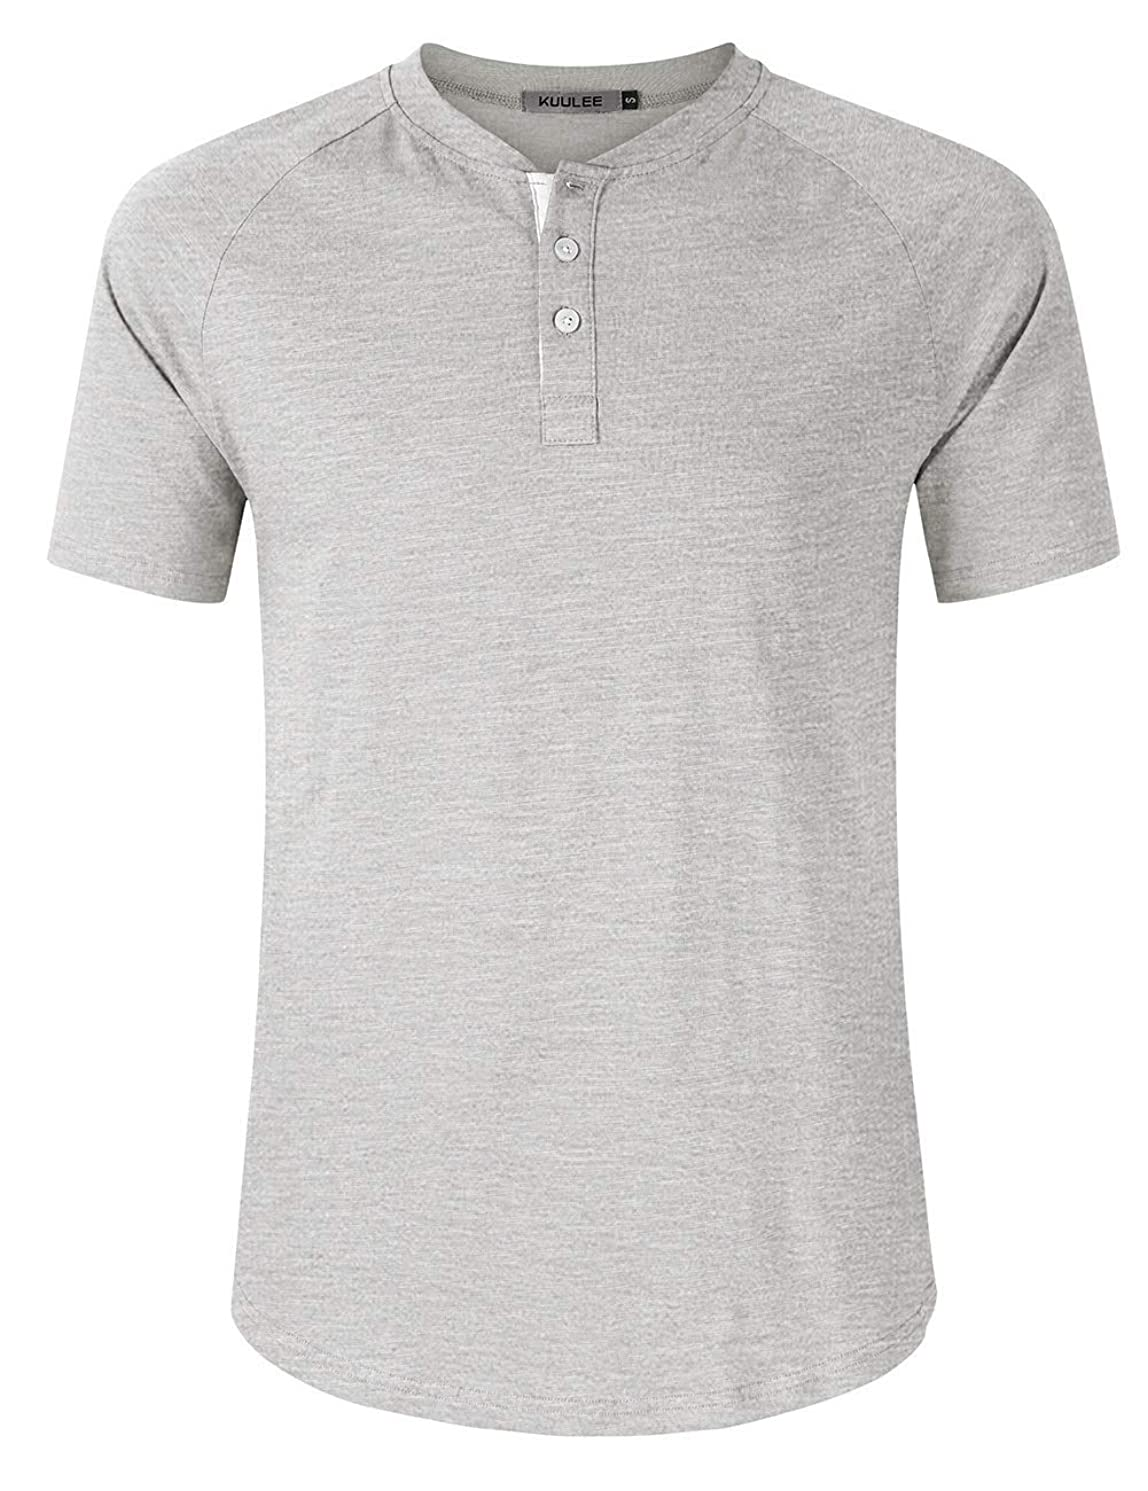 Men's Regular Fit Short Sleeve Henley T-Shirt Tee Classic Slub Henley T-Shirt with Button